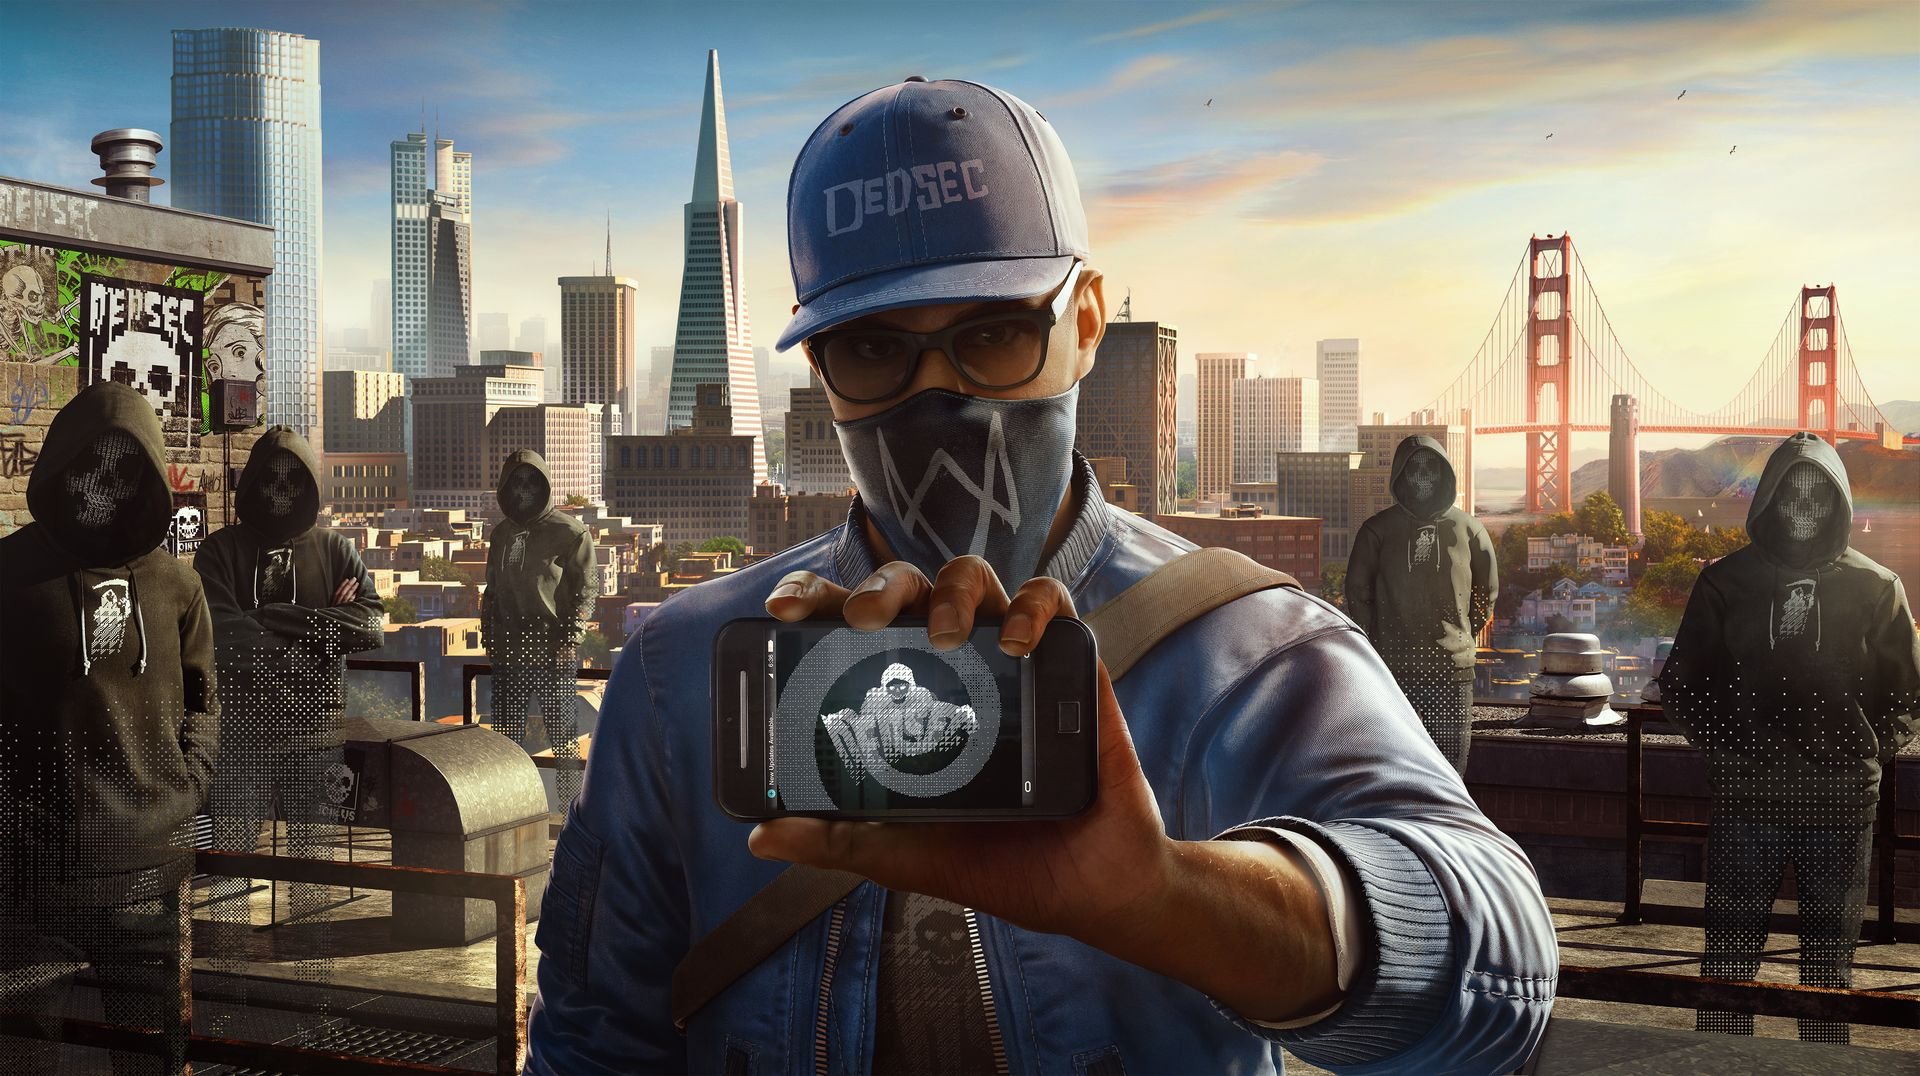 watch-dogs-2-artwork-ME3050720239_2